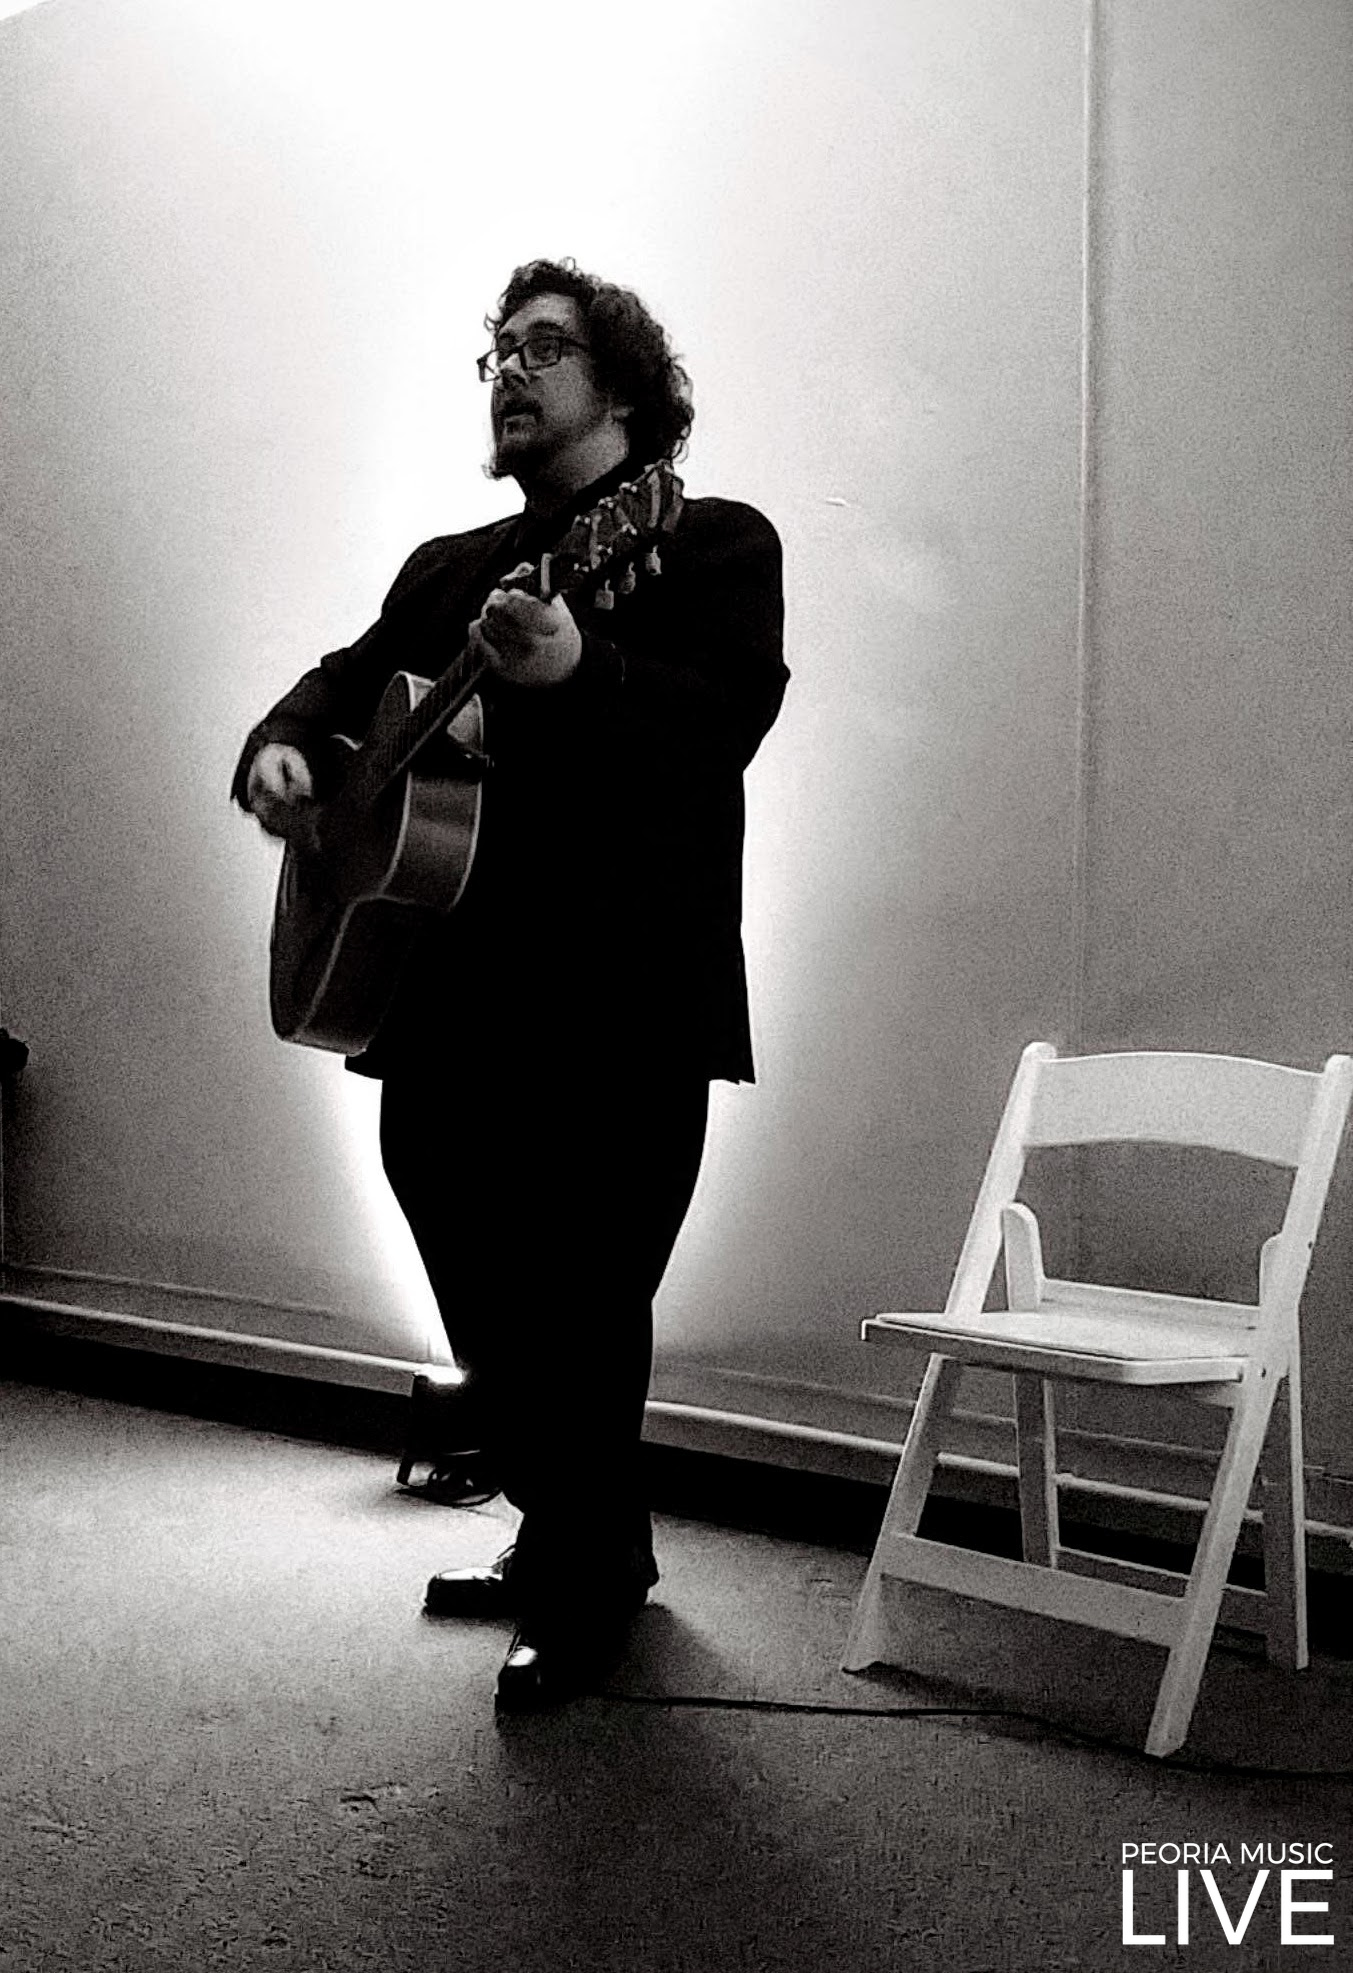 Jon Howard played at the benefit for music education at the Betty Jayne Brimmer Center for the Performing Arts on Feb 2, 2019